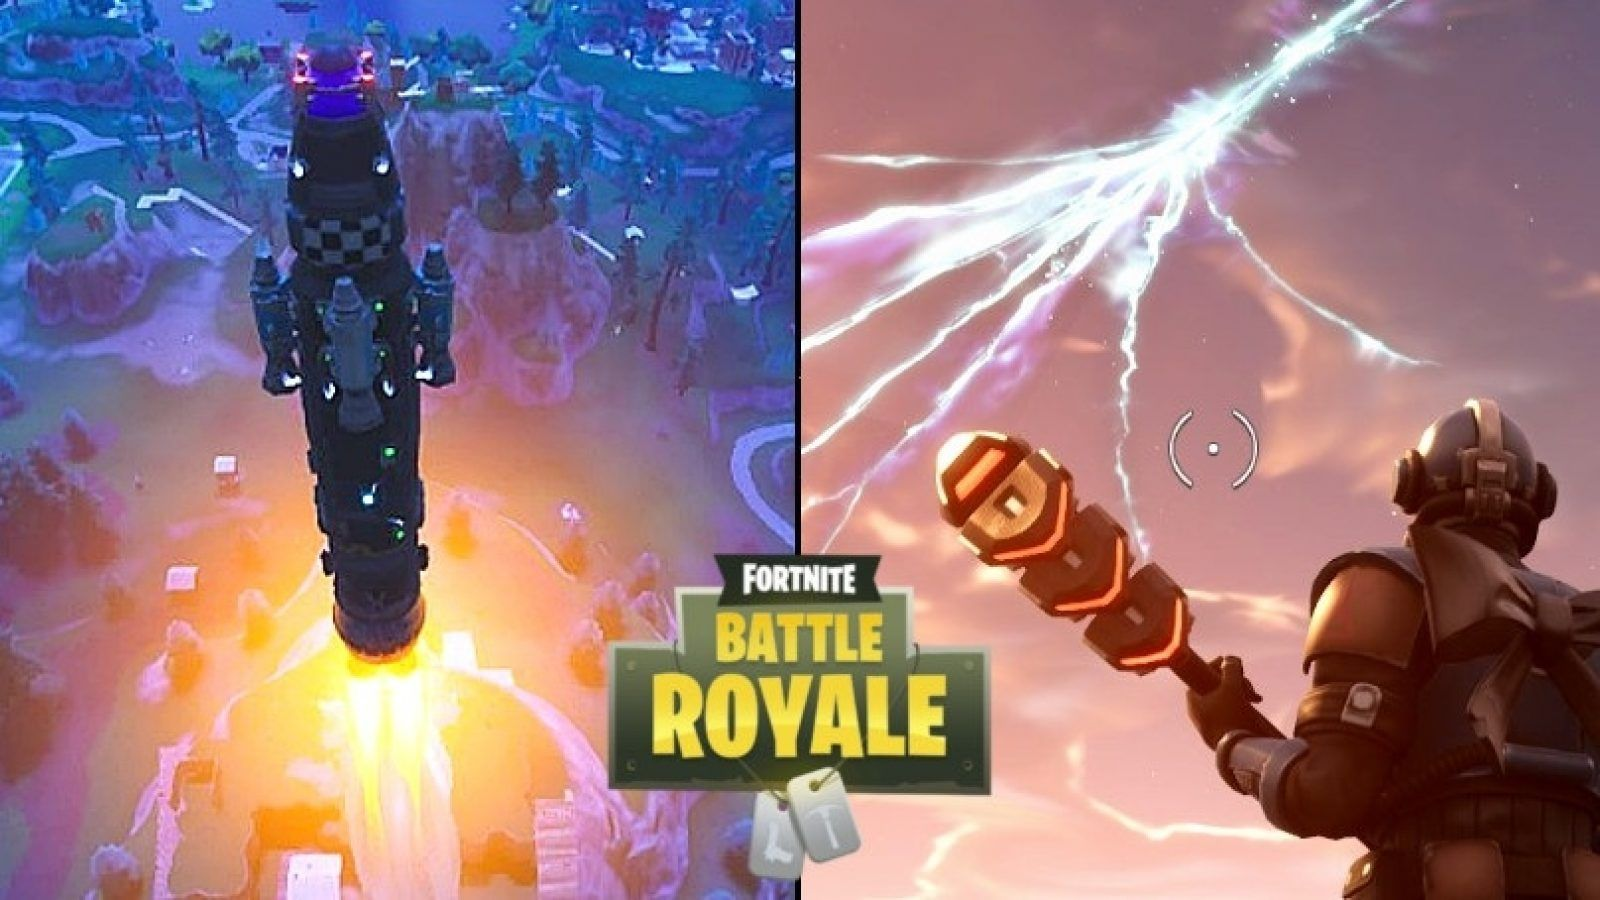 1600x900 The Rocket Has Launched in Fortnite! - Footage and Images | Dexerto ...